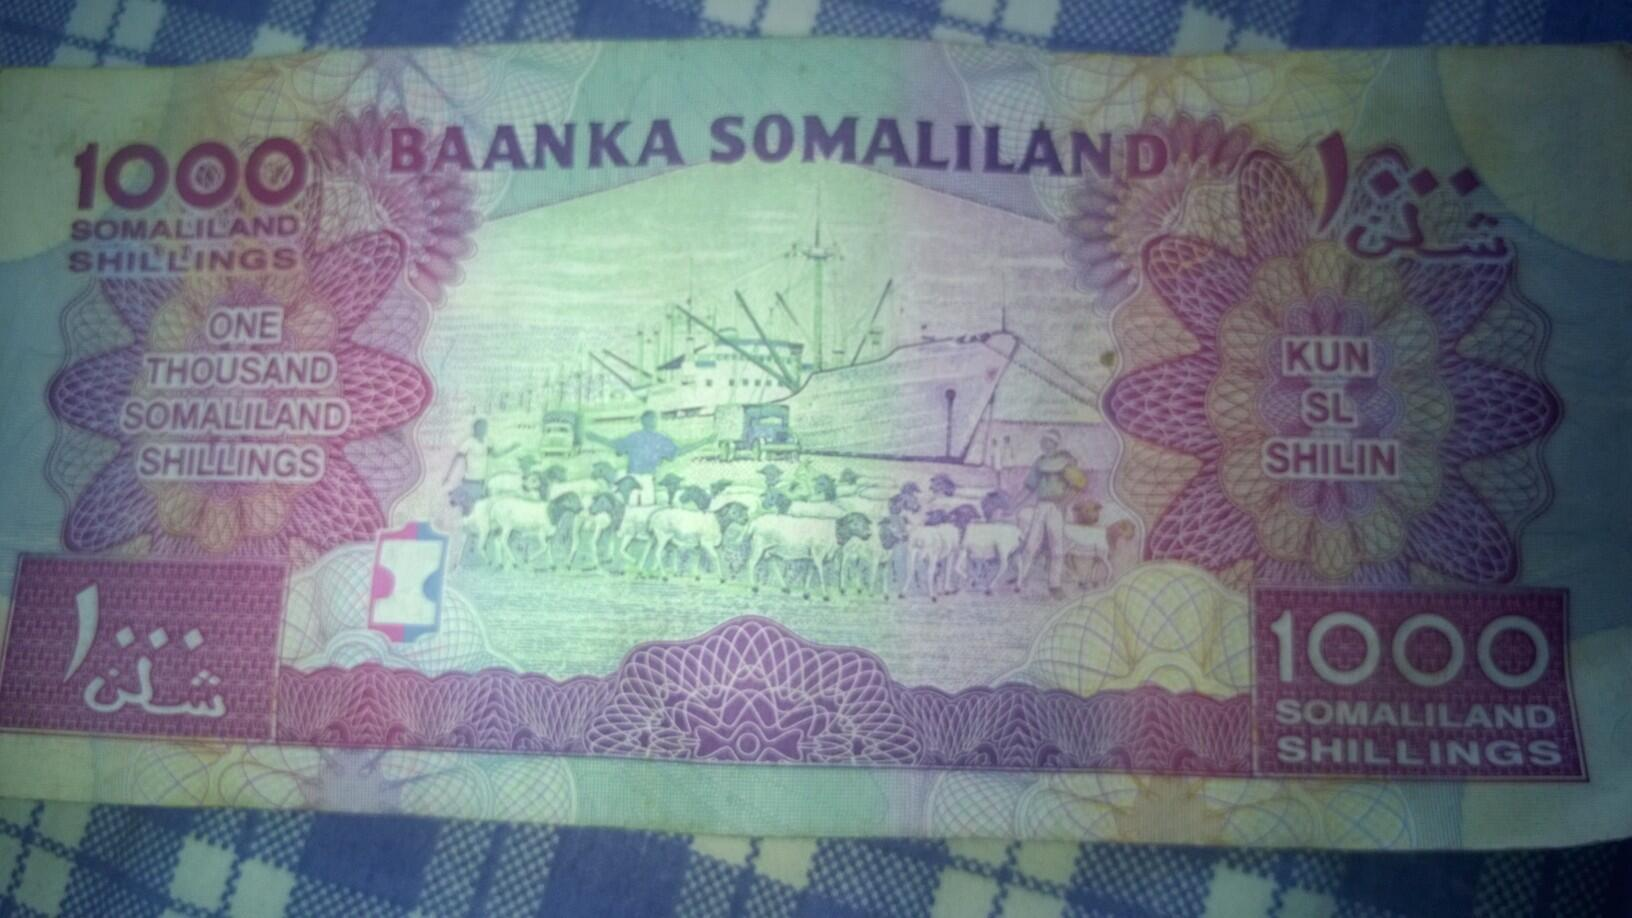 1000 Somaliland shillings depicts livestock export from the port of Berbera